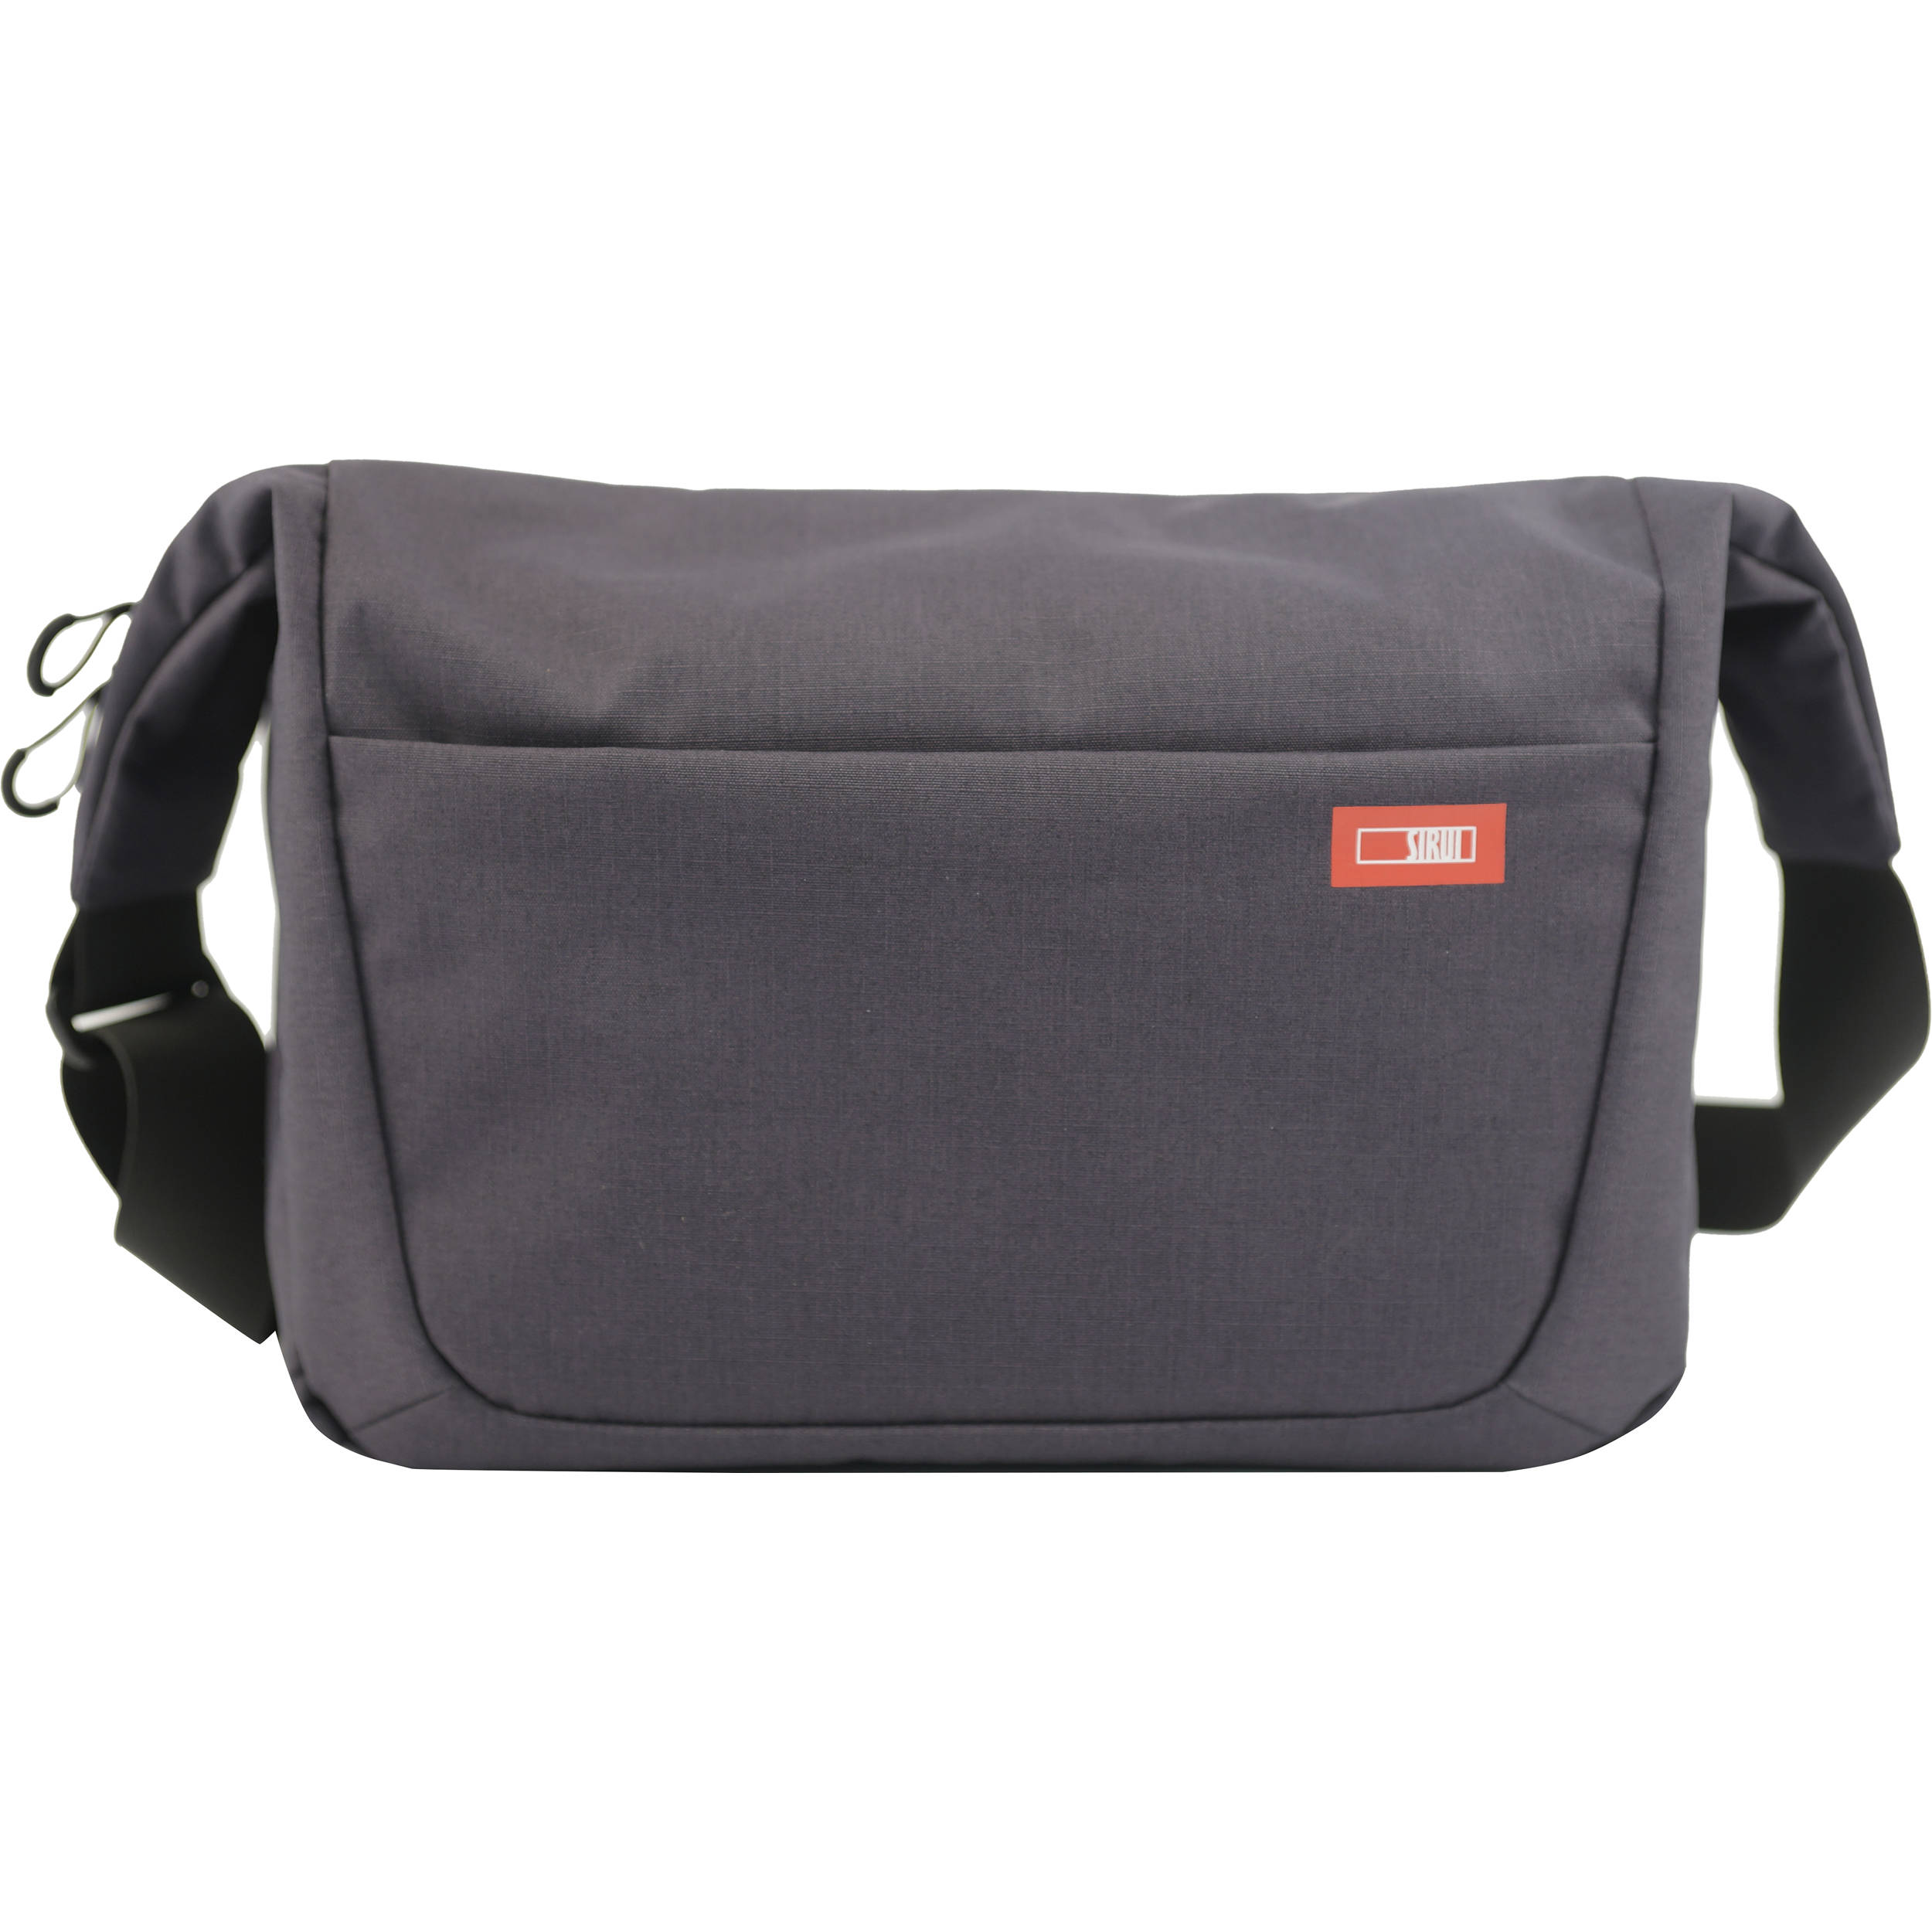 Sirui Slinglite 8 Sling Bag (Gray) SR5008G B&H Photo Video